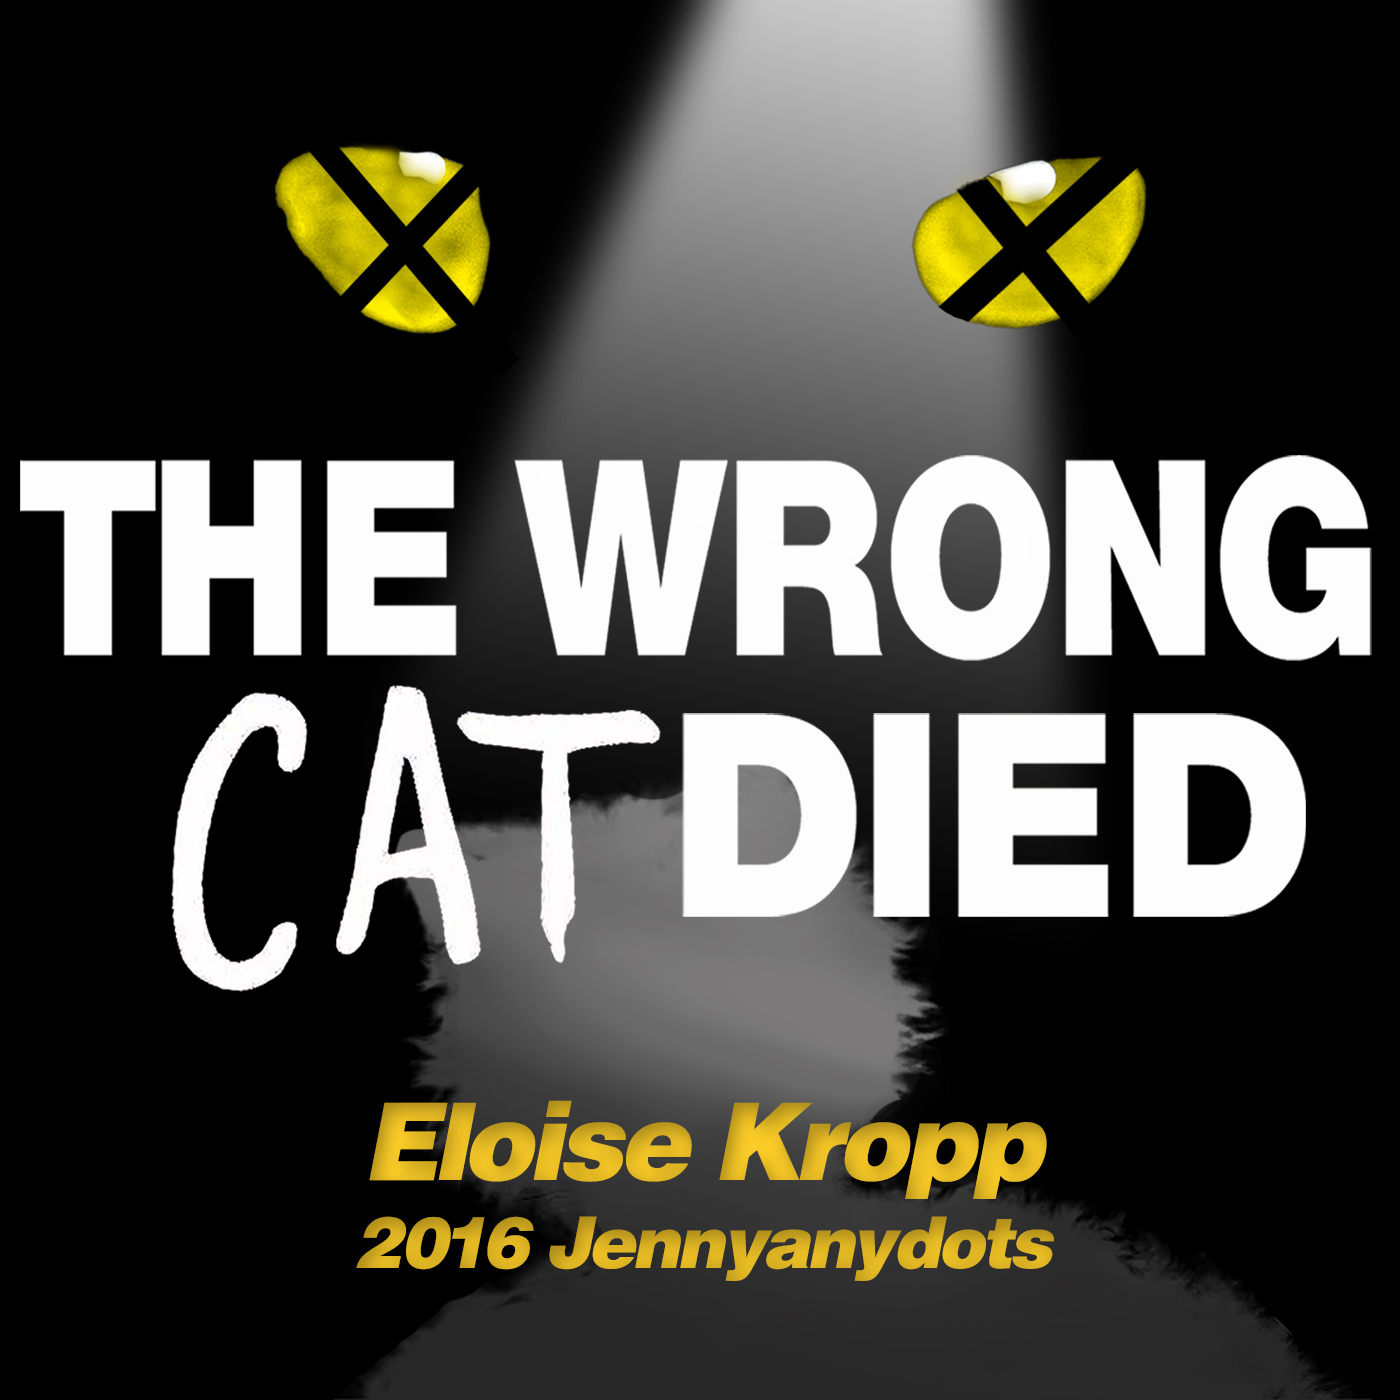 The Wrong Cat Died 23 - TWCD Eloise Kropp Jennyanydots